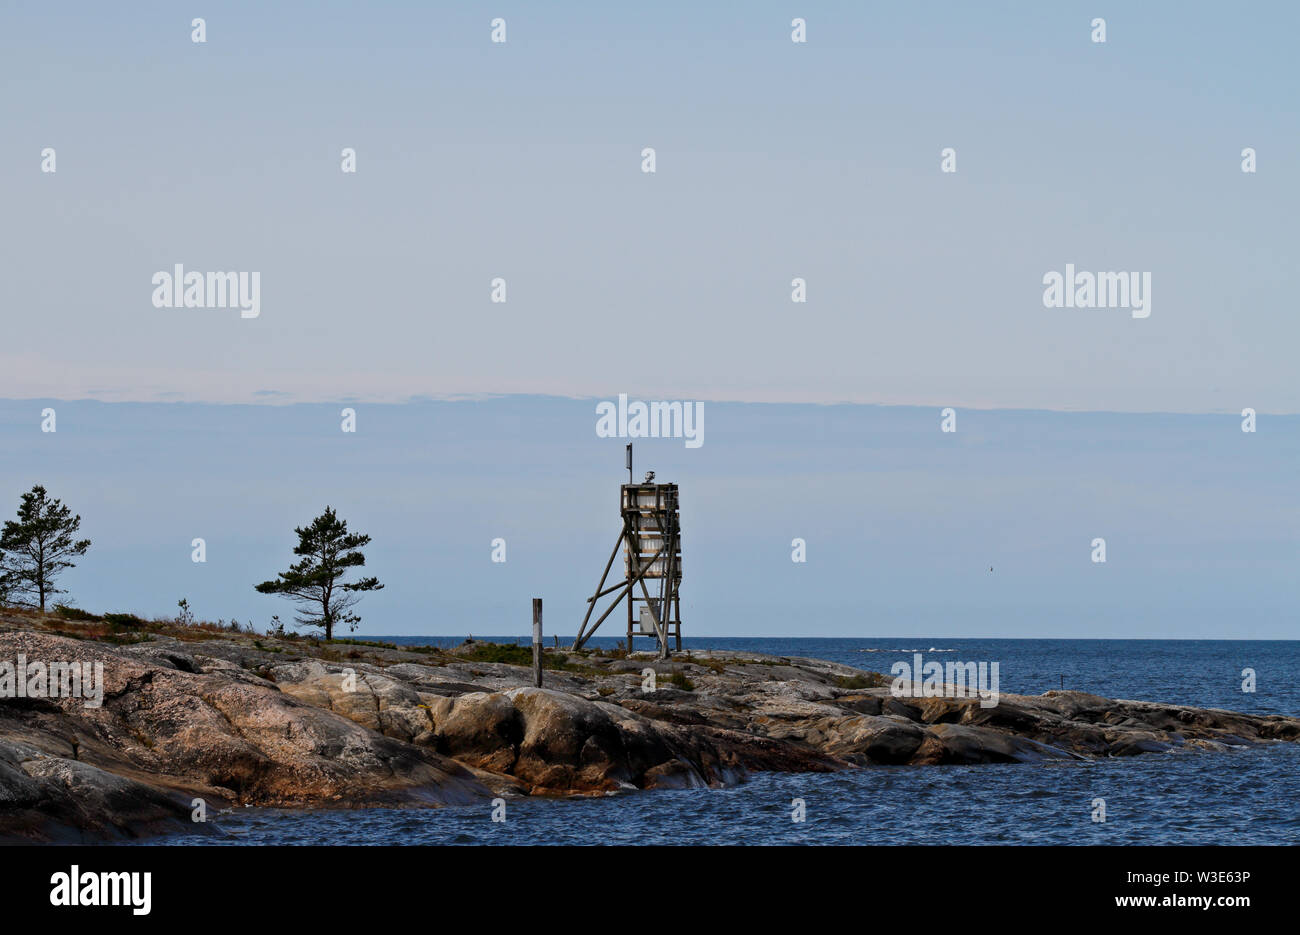 A  sea mark standing on a cliff on the islet of the Bothnian sea Stock Photo